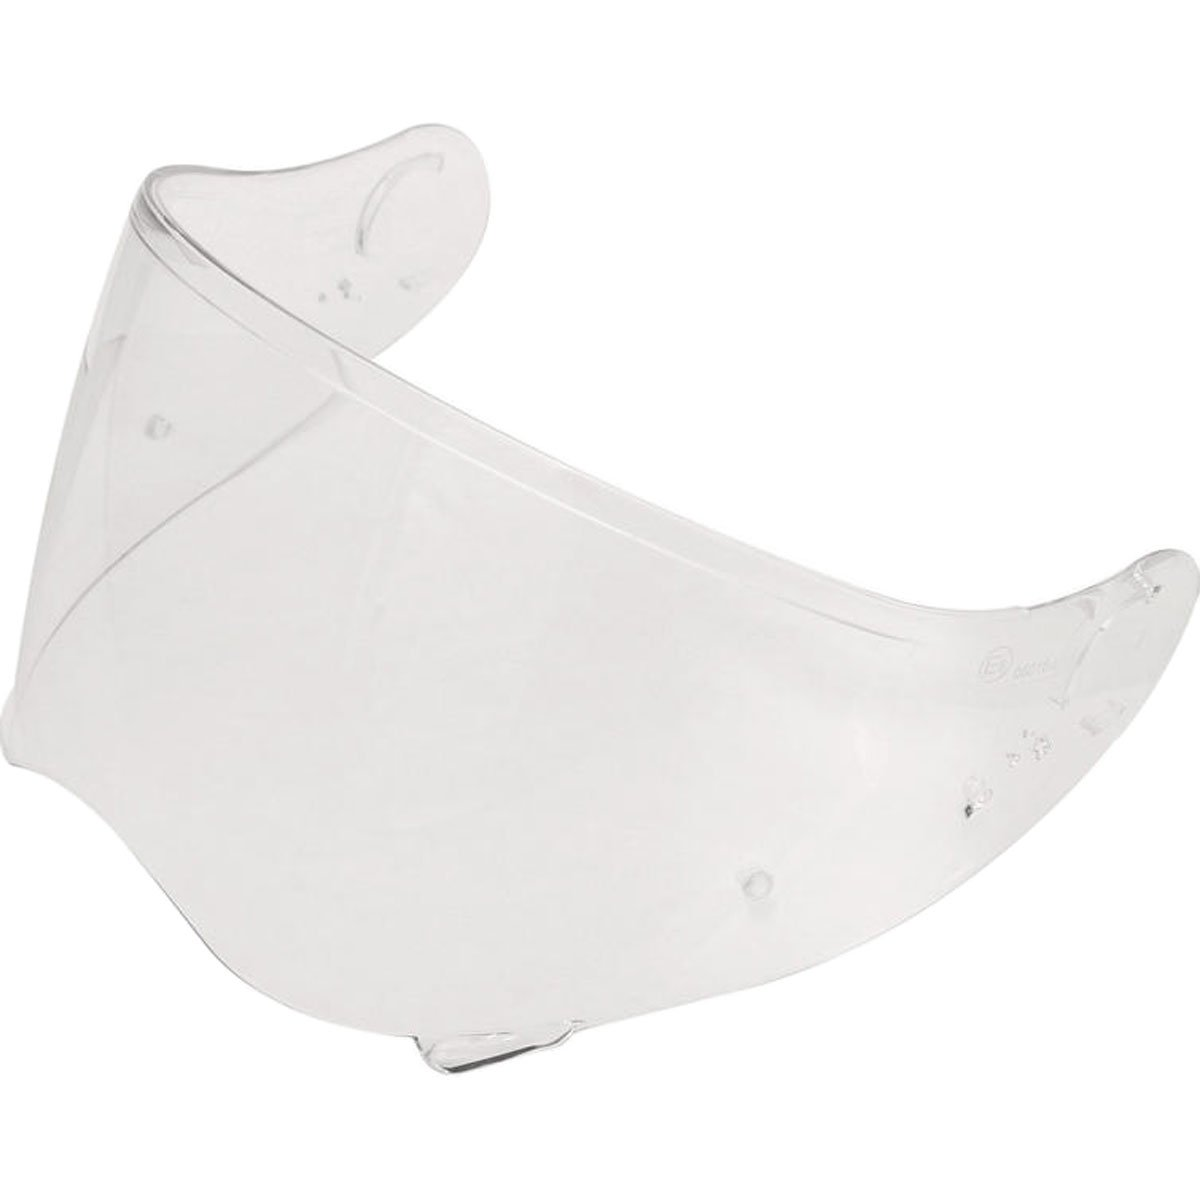 Shoei CNS-2 Visor Off-Road Motorcycle Helmet Accessories - Clear/One Size